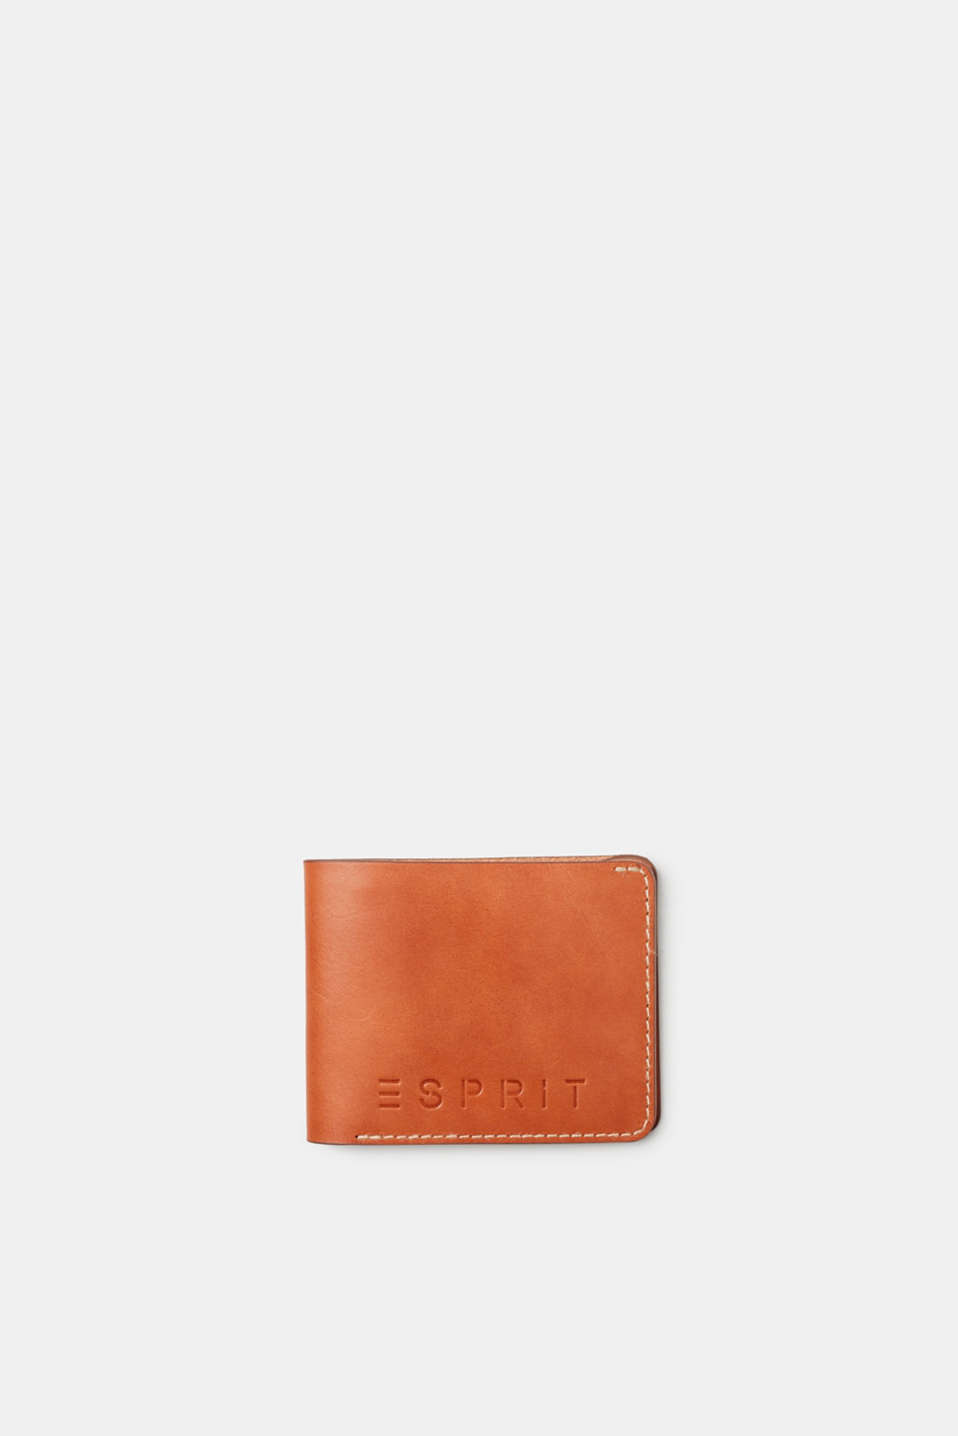 This wallet is a practical accessory thanks to its bold embossed logo and compact shape.